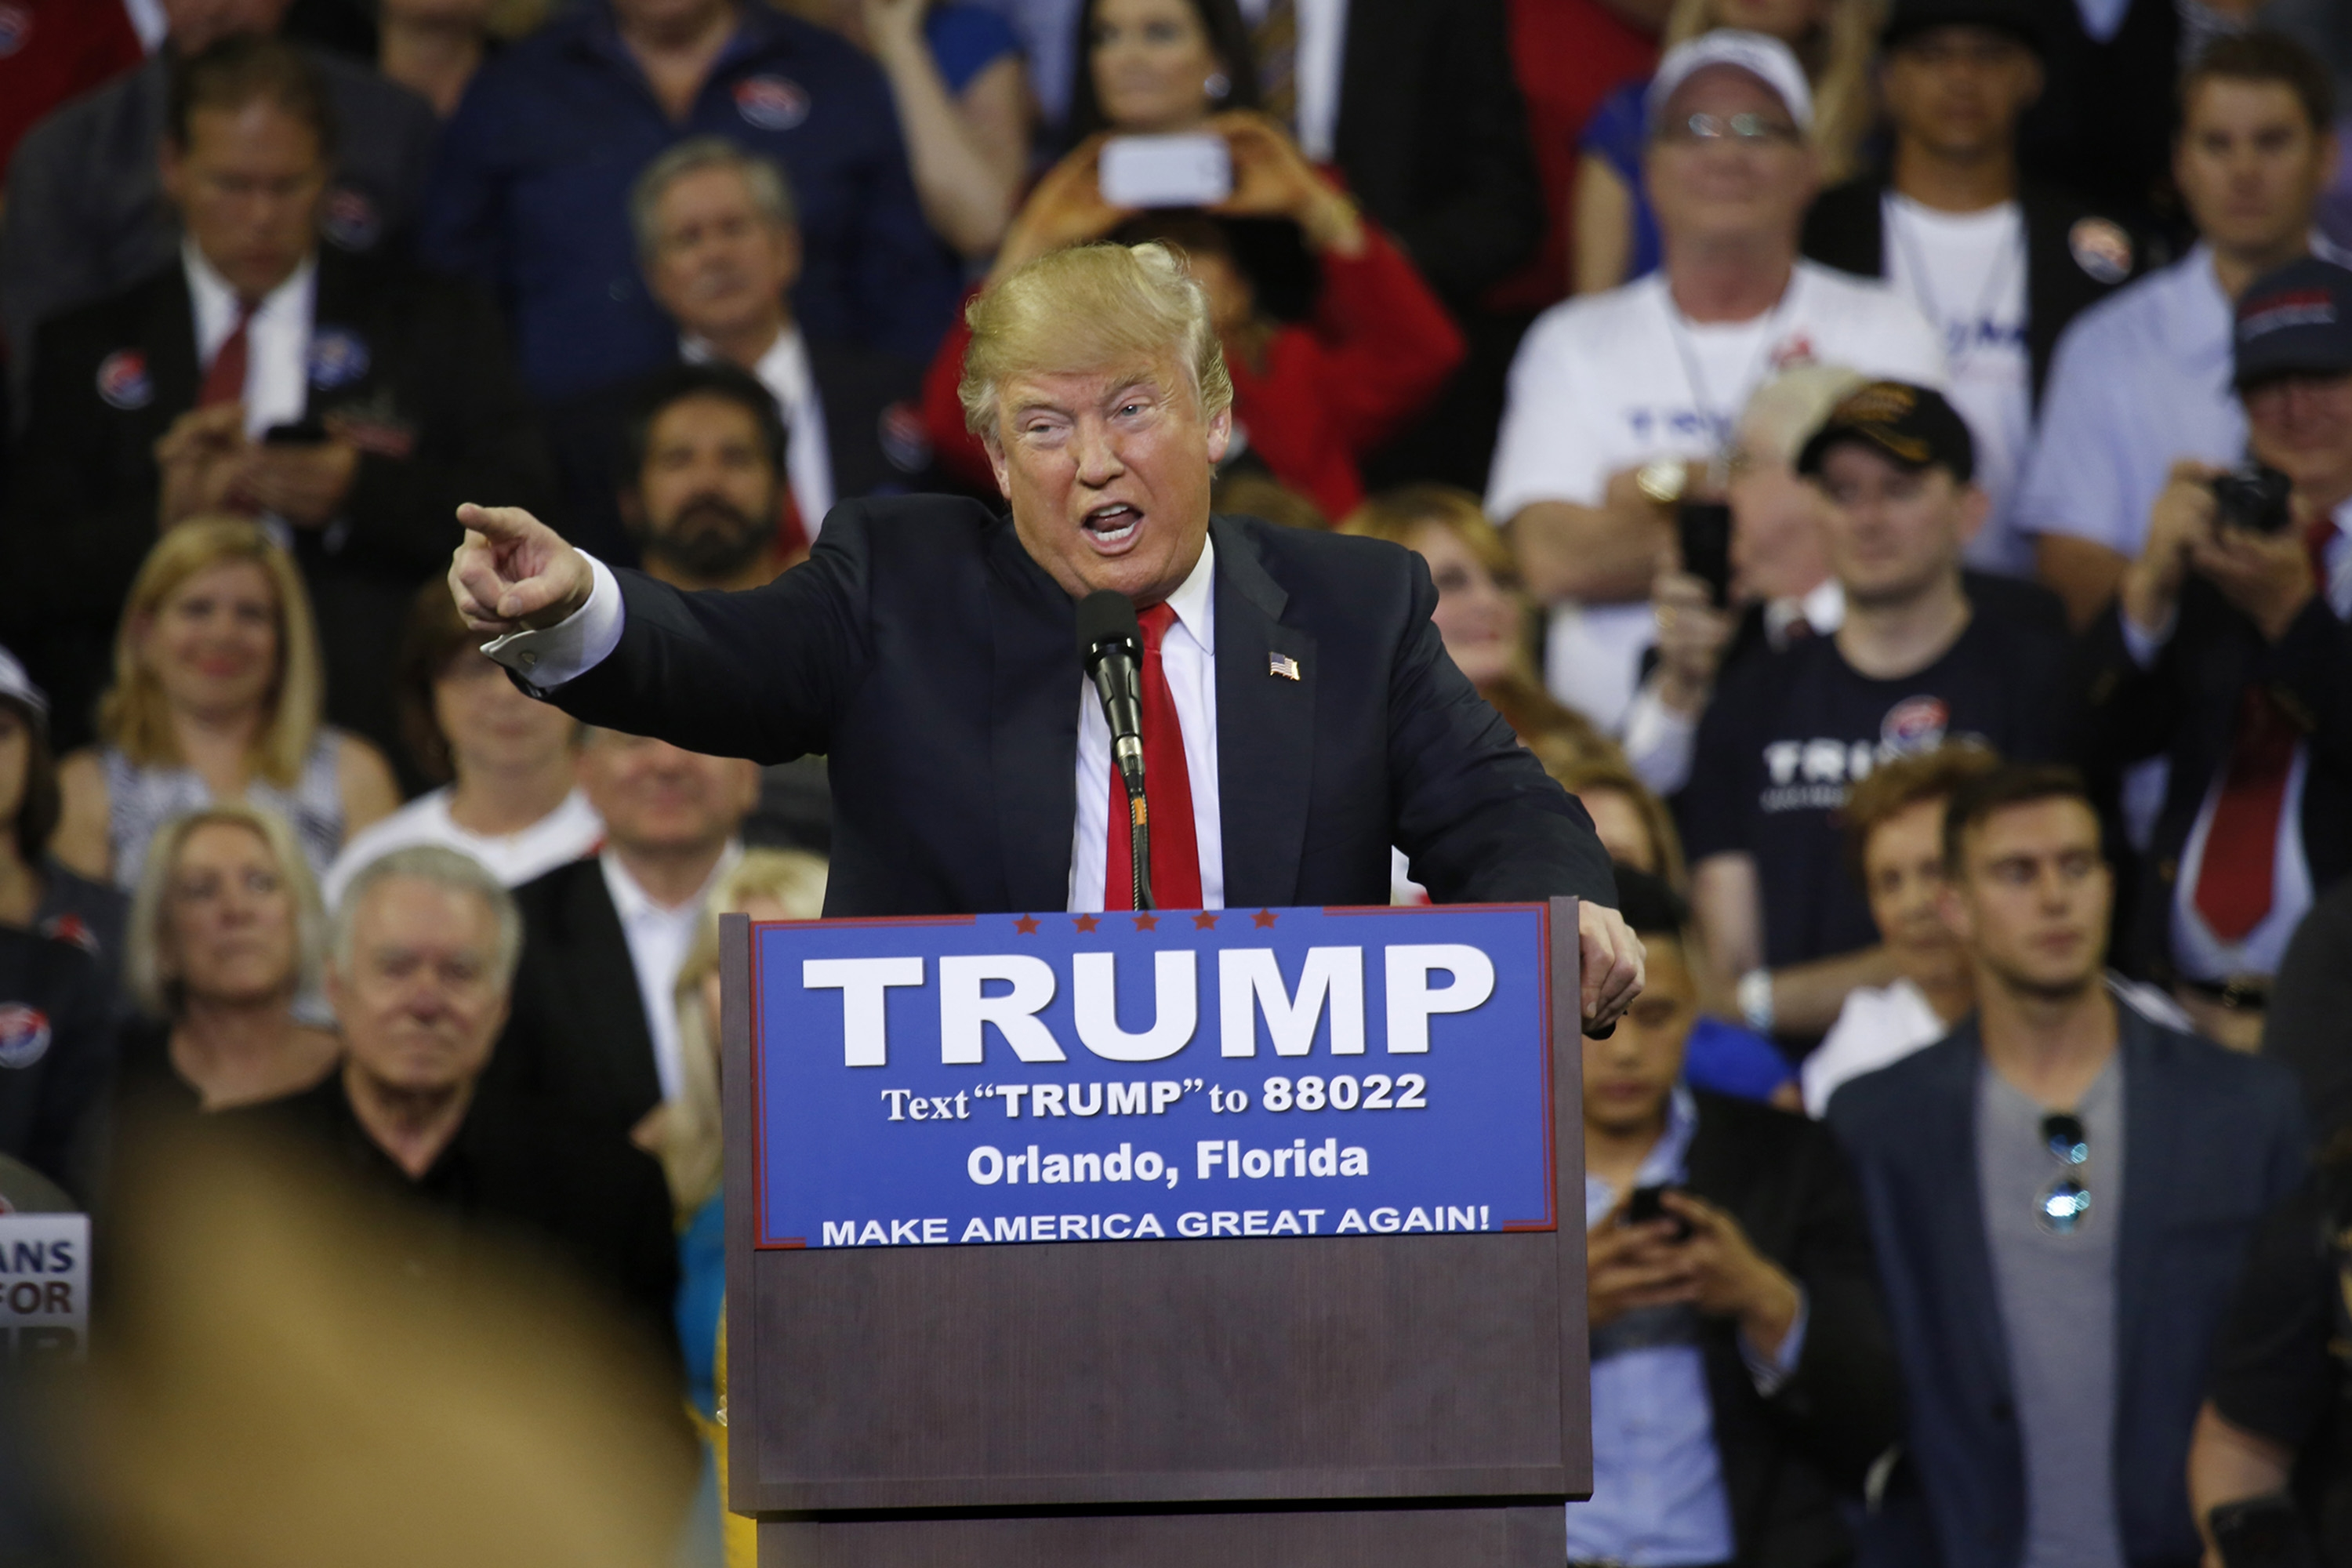 Presidential candidate Donald Trump fires up the crowd at his rally at the University of Central Florida on Saturday.